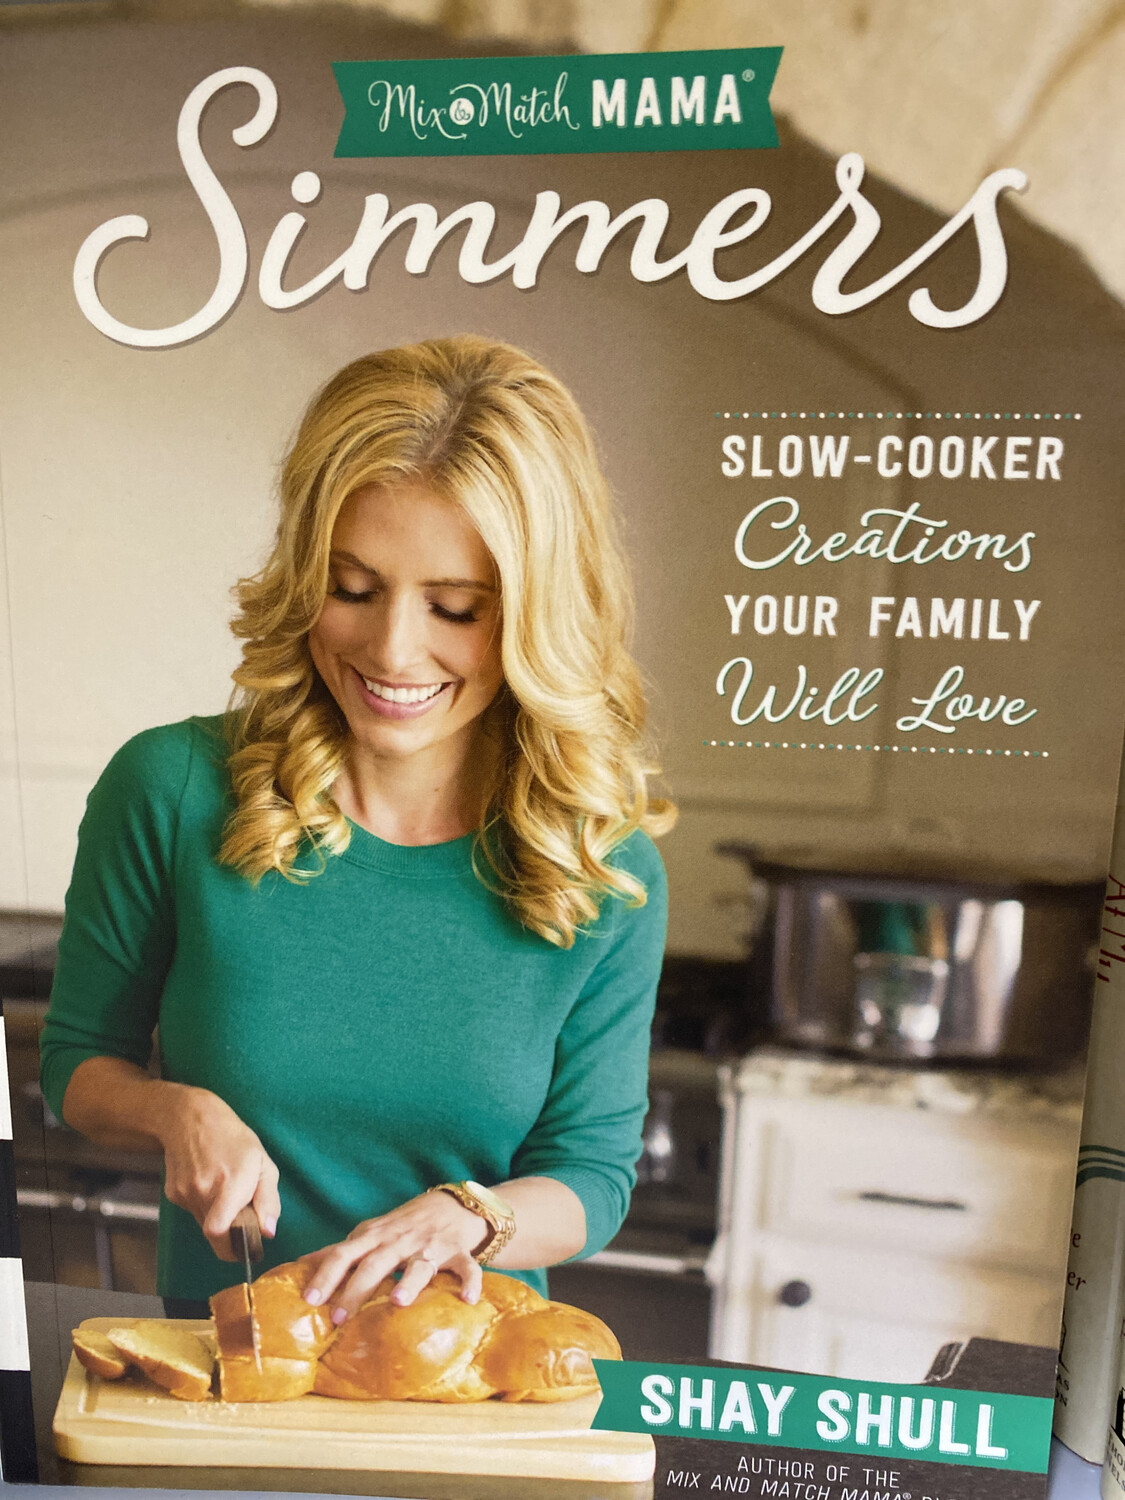 SHULL, Simmers, Slow-cook Creations